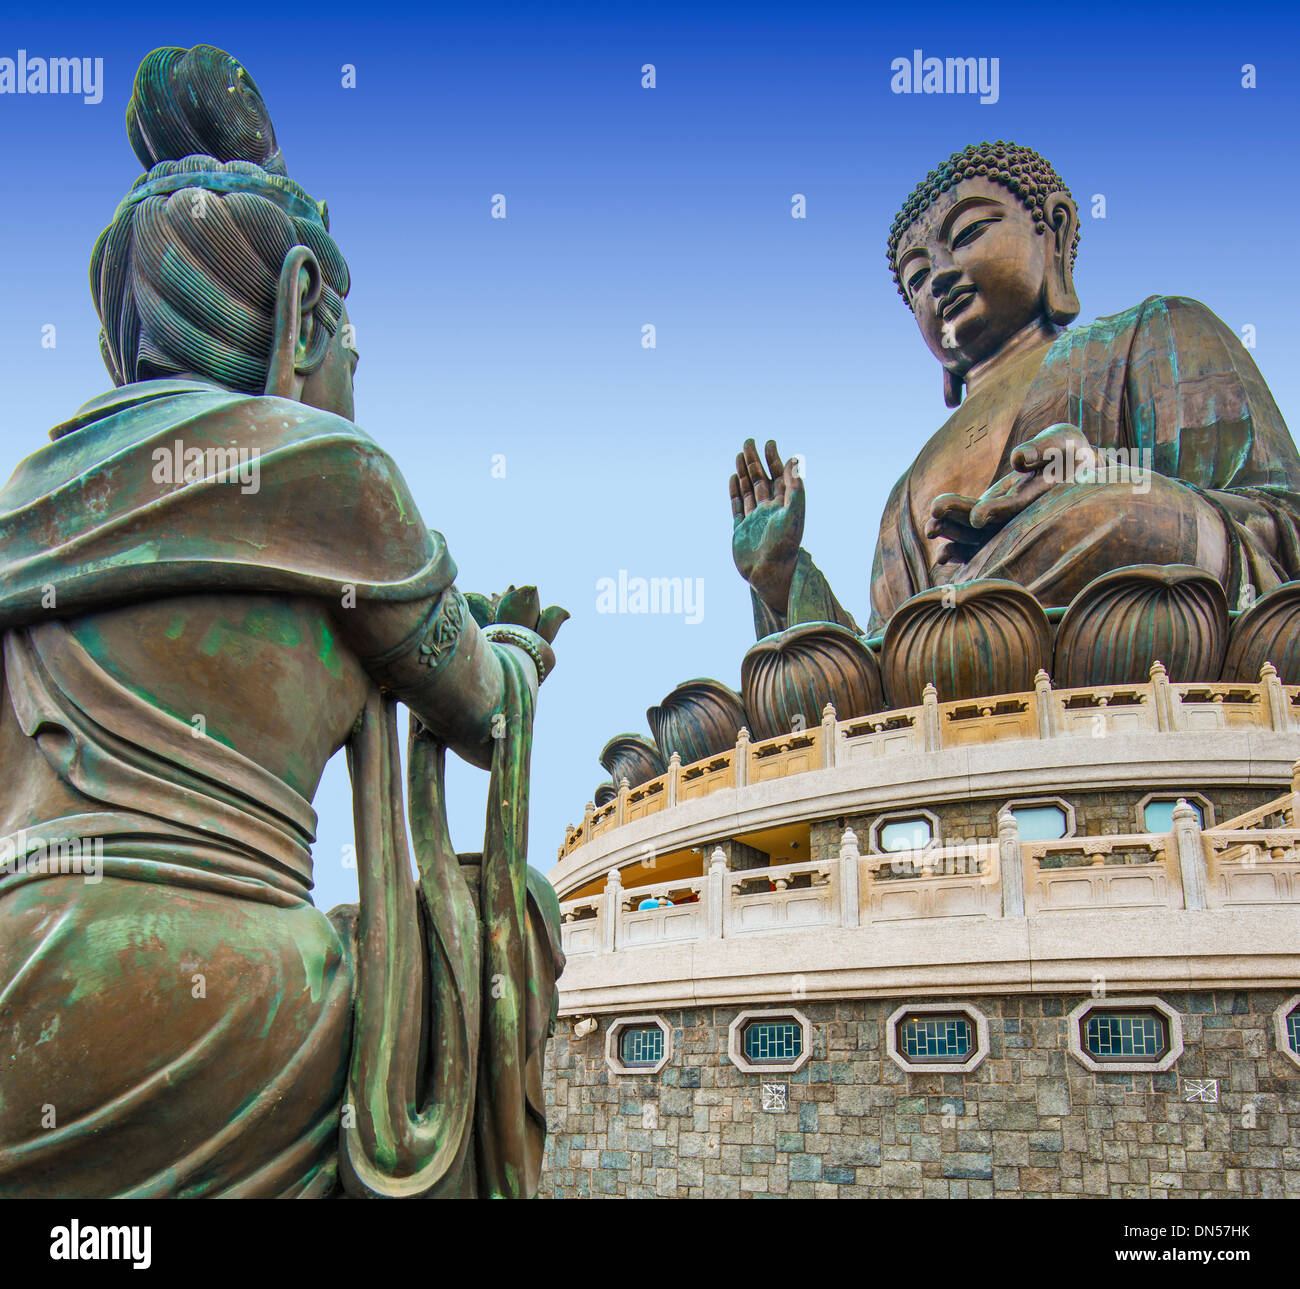 Grand Bouddha de l'île de Lantau à Hong Kong, Chine. Photo Stock